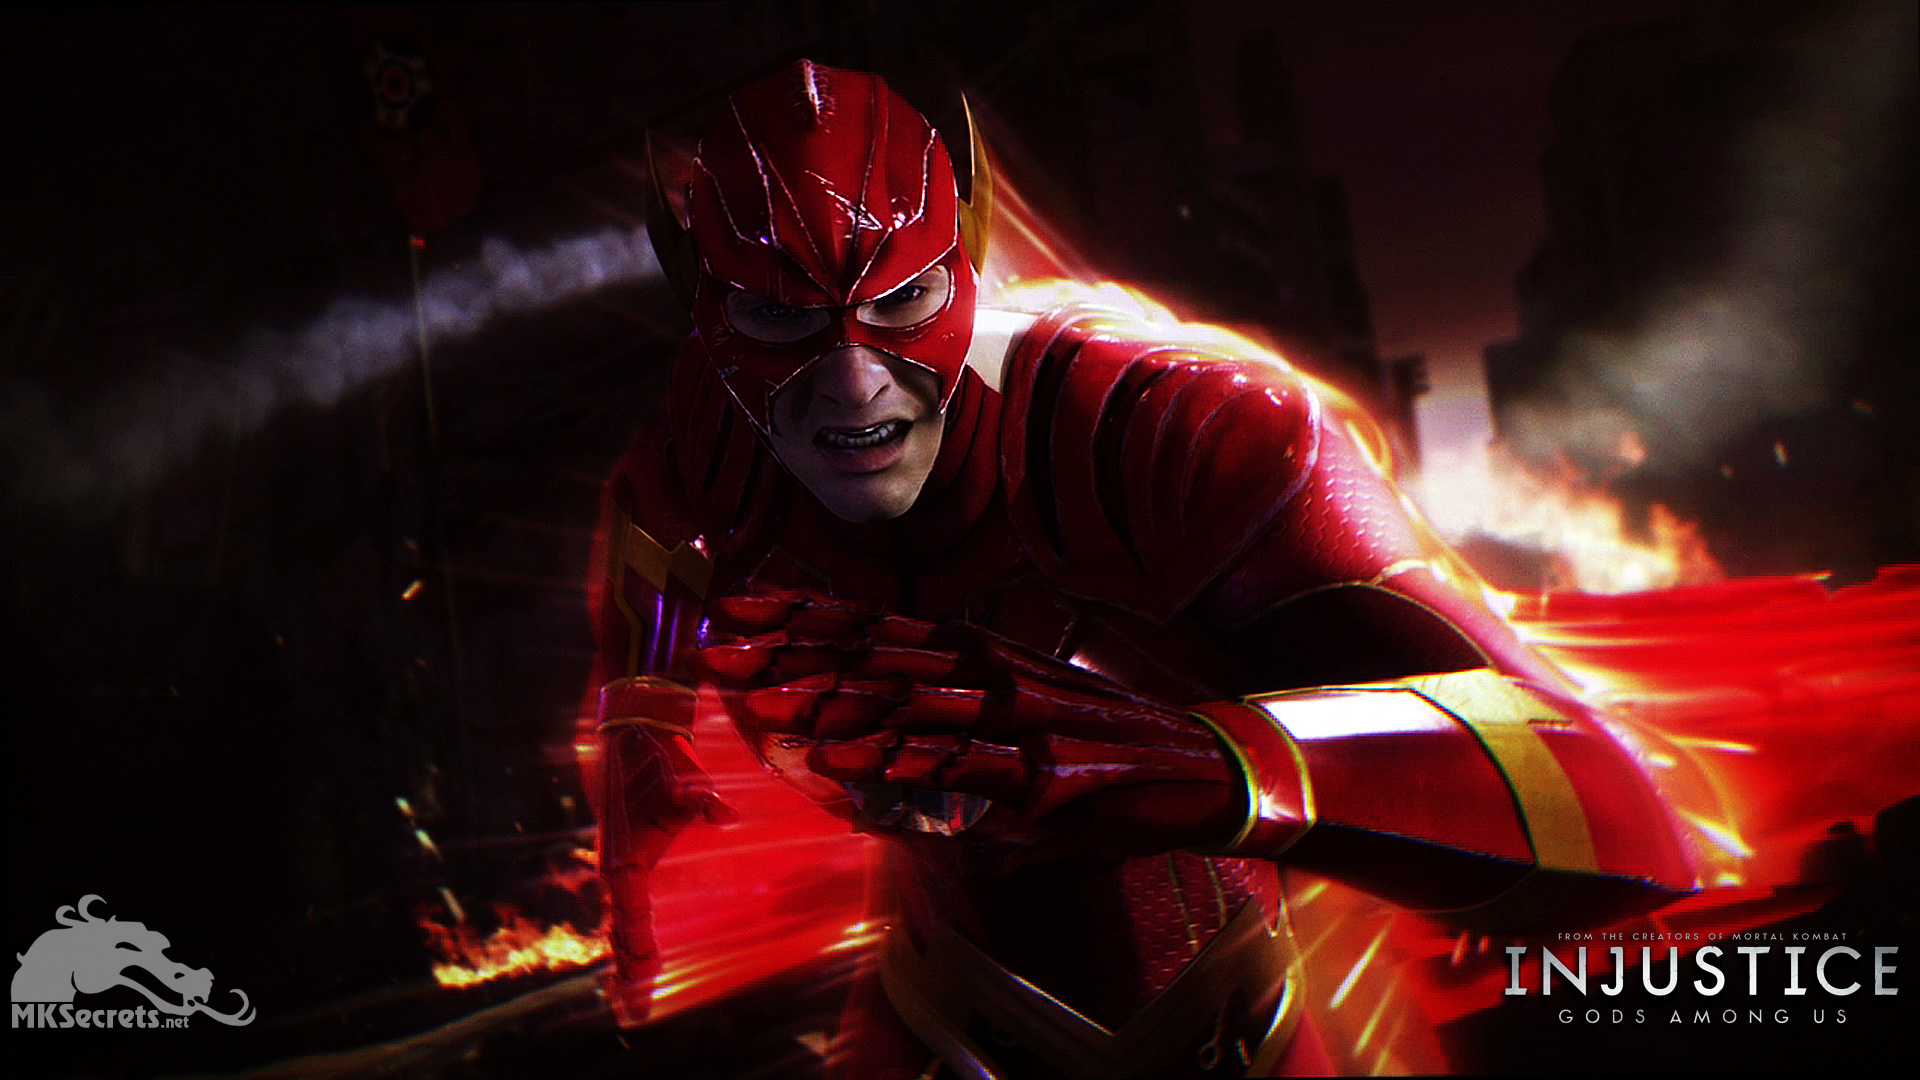 Injustice Gods Among Us   The Flash Wallpaper 1920x1080